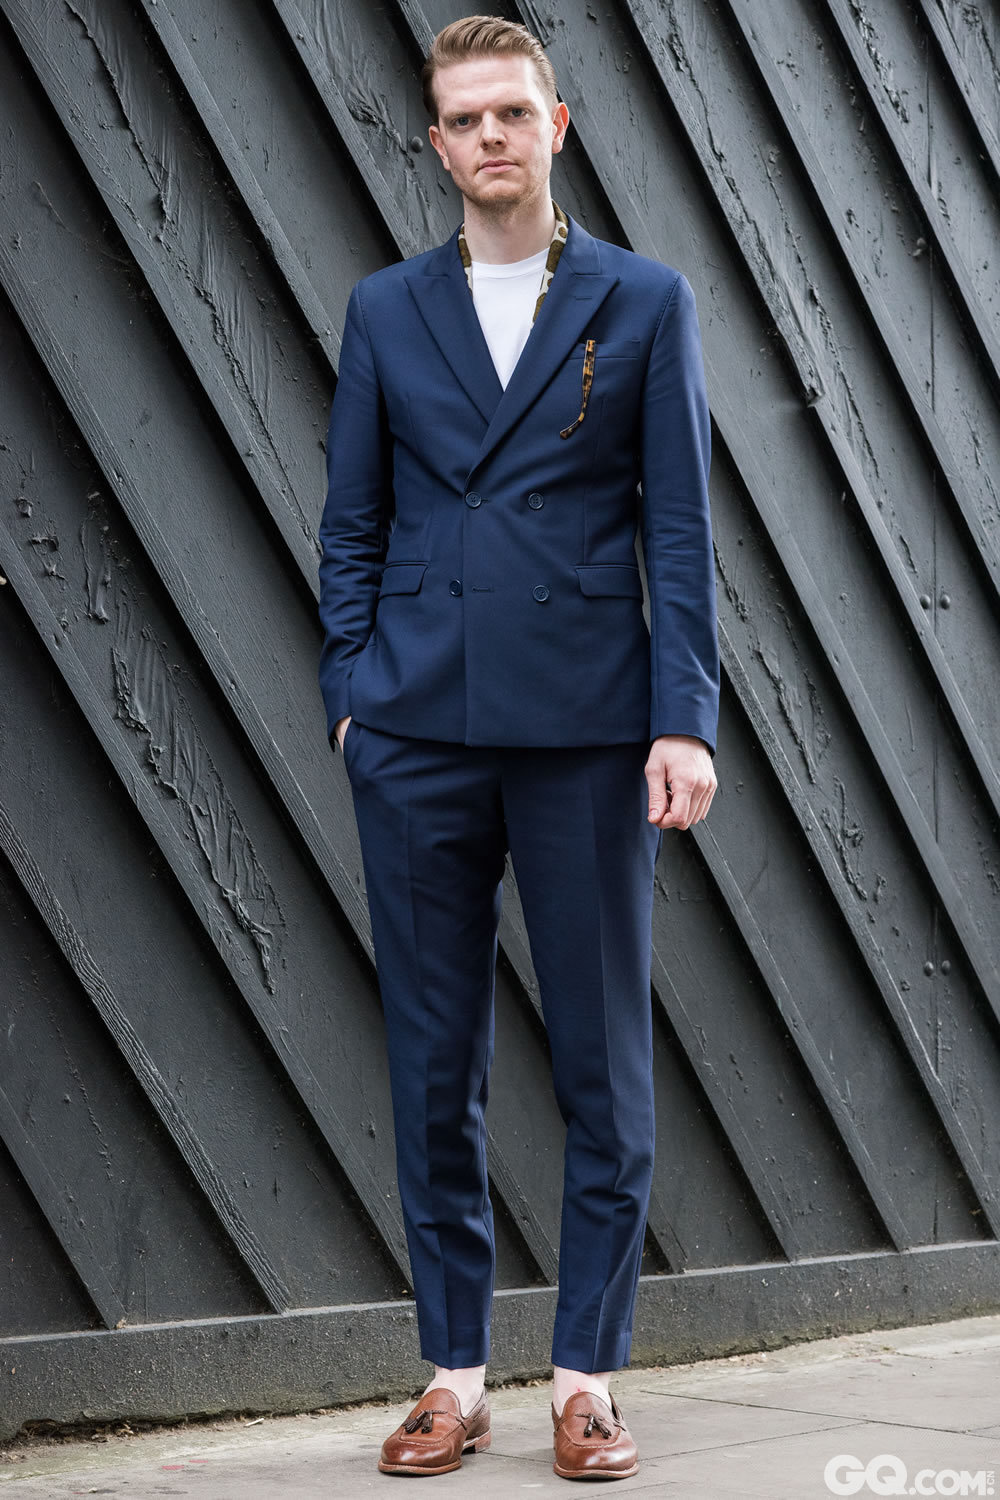 Michael Scarf: Vintage Suit: Acne T-shirt: American Apparel  Shoes: Grenson   Inspiration: Summer tailoring, something tailored but easy (夏季定制,虽是定制但不失简约。)